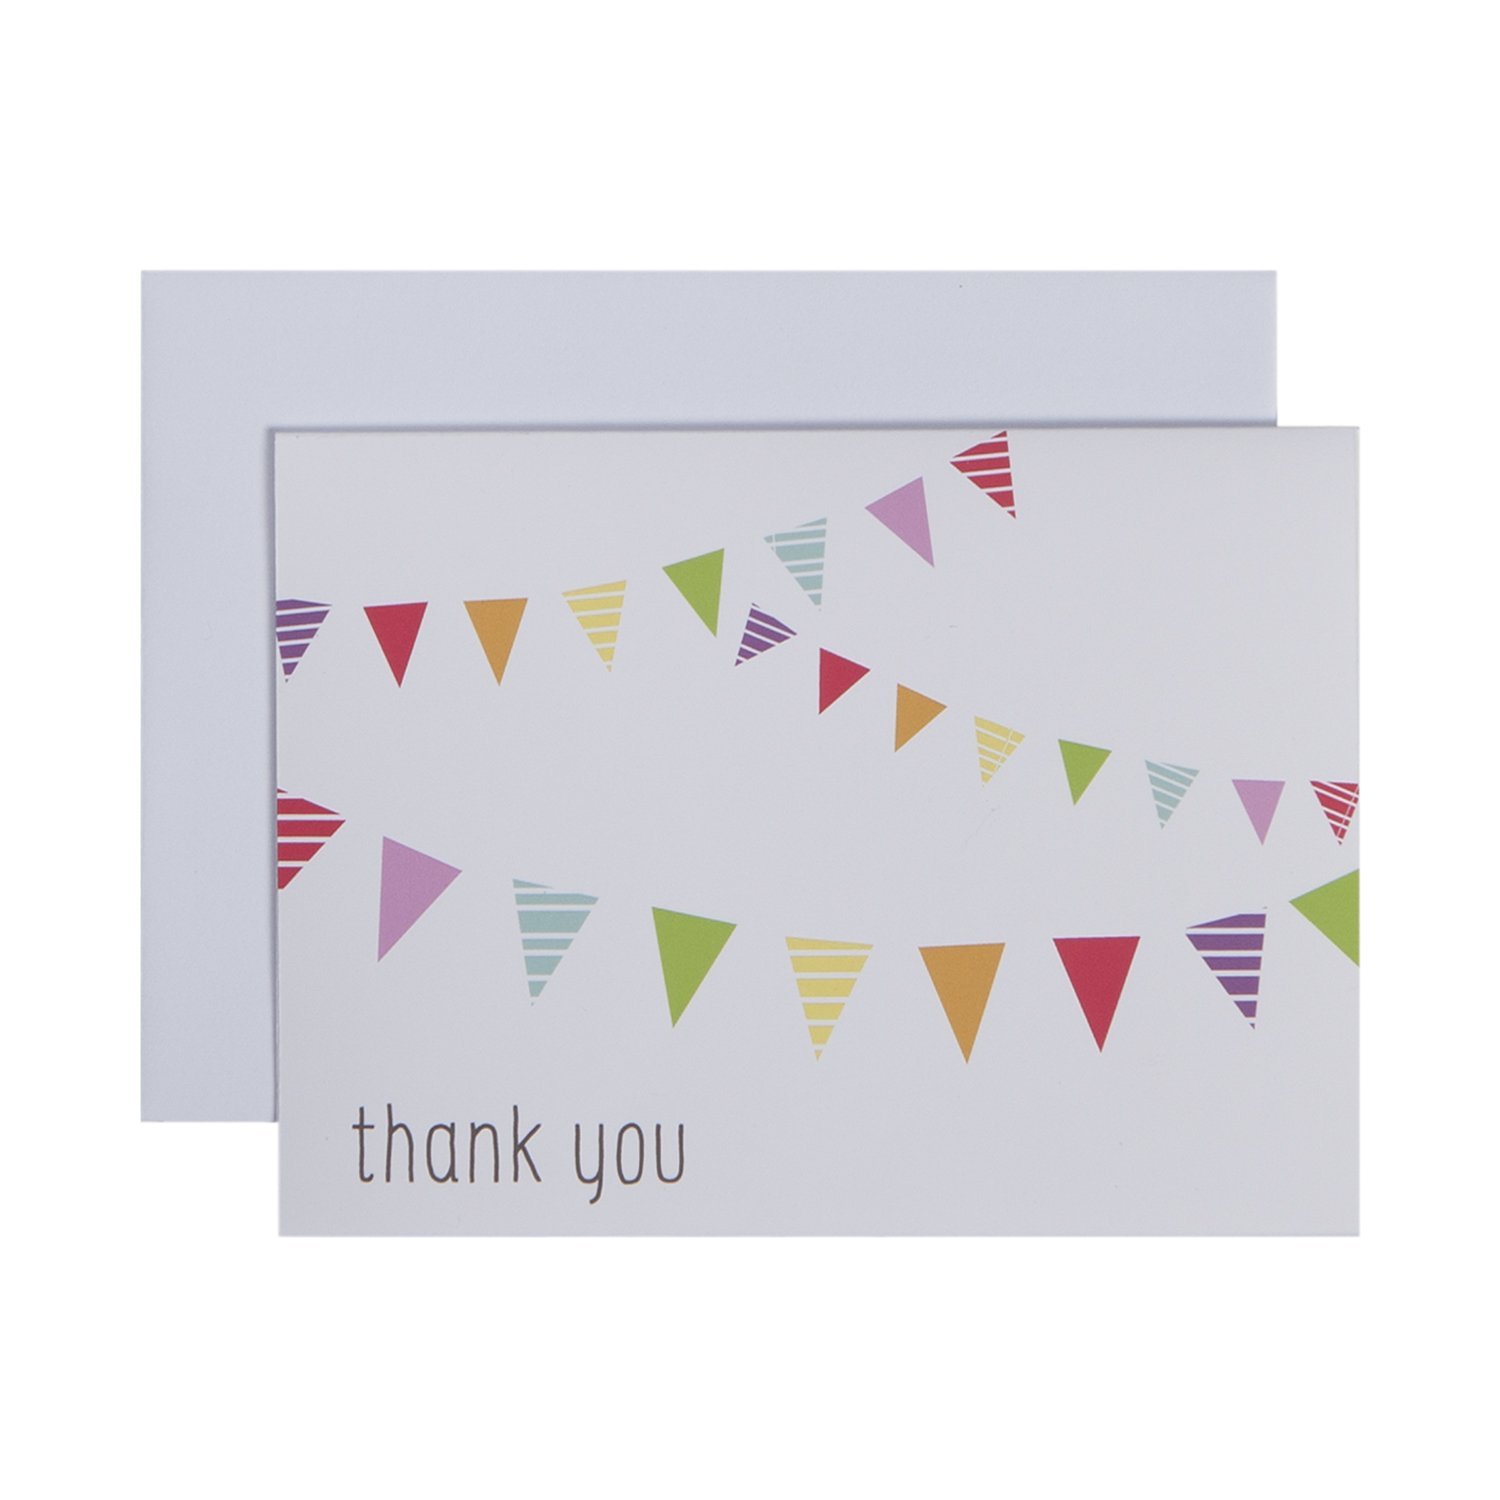 CRG C.R. Gibson Boxed Thank You Notes, Fun and Festive, 10 Count NTT-13918